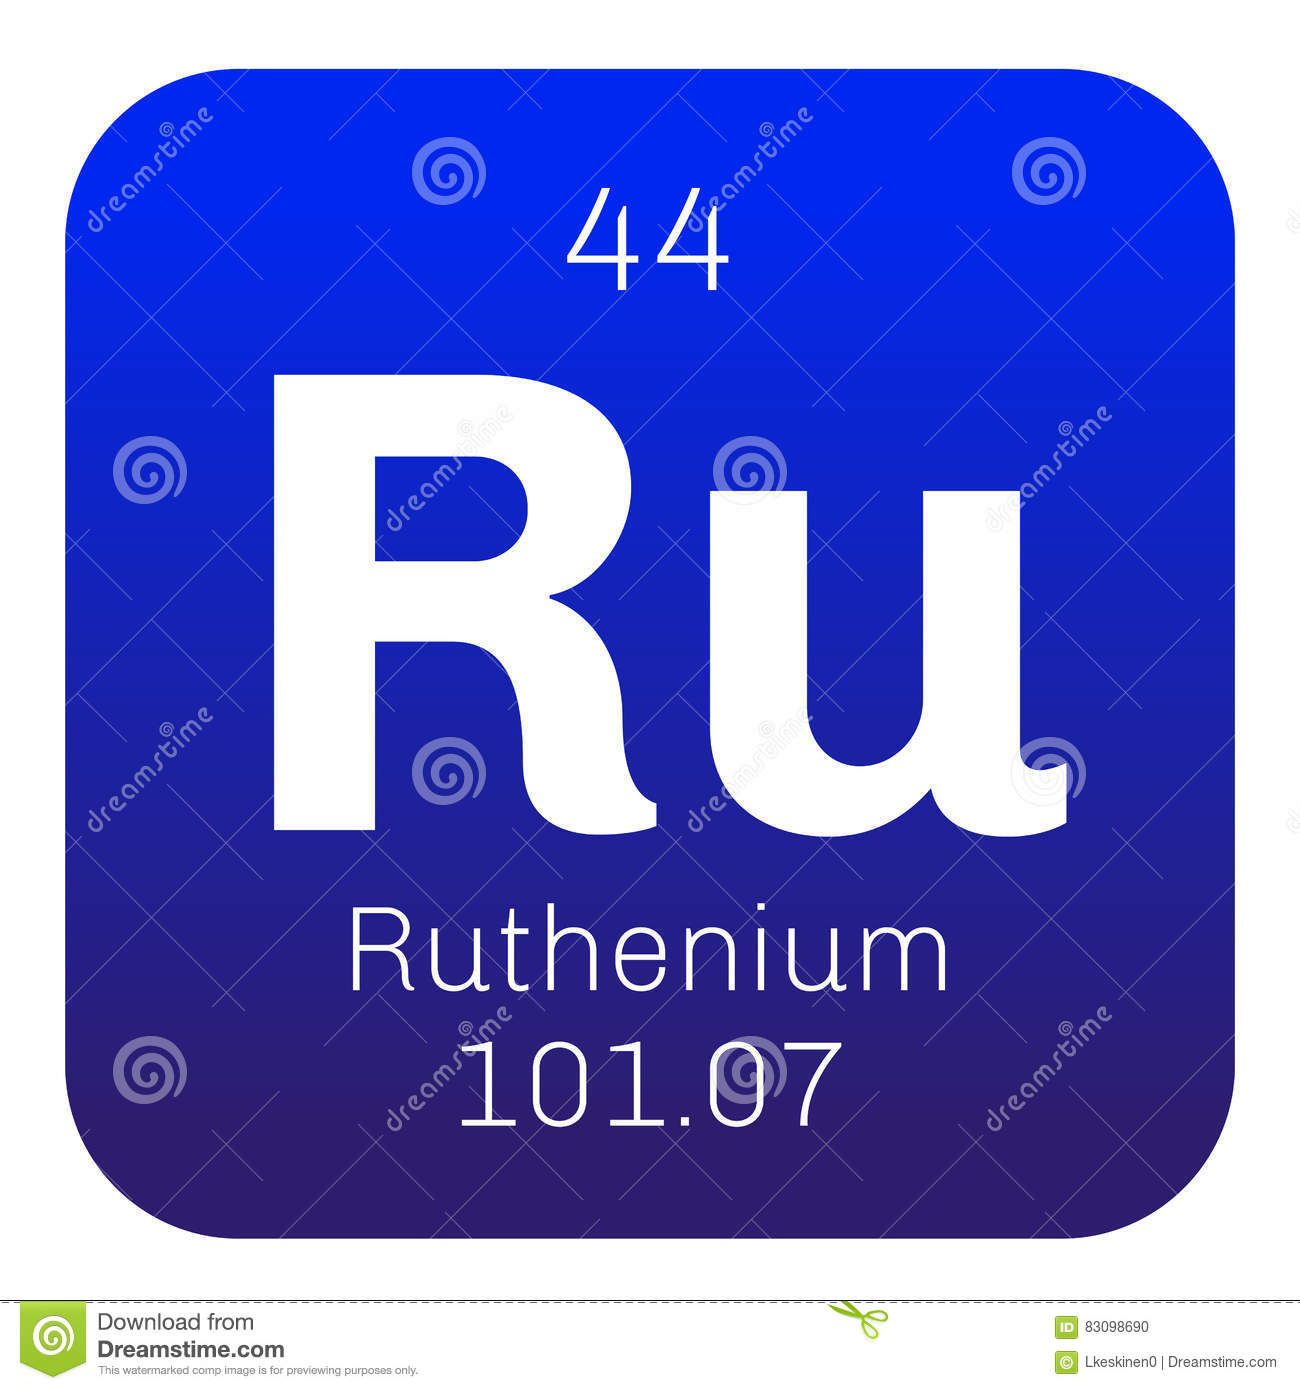 Ruthenium Chemical Element Stock Vector Illustration Of Physics